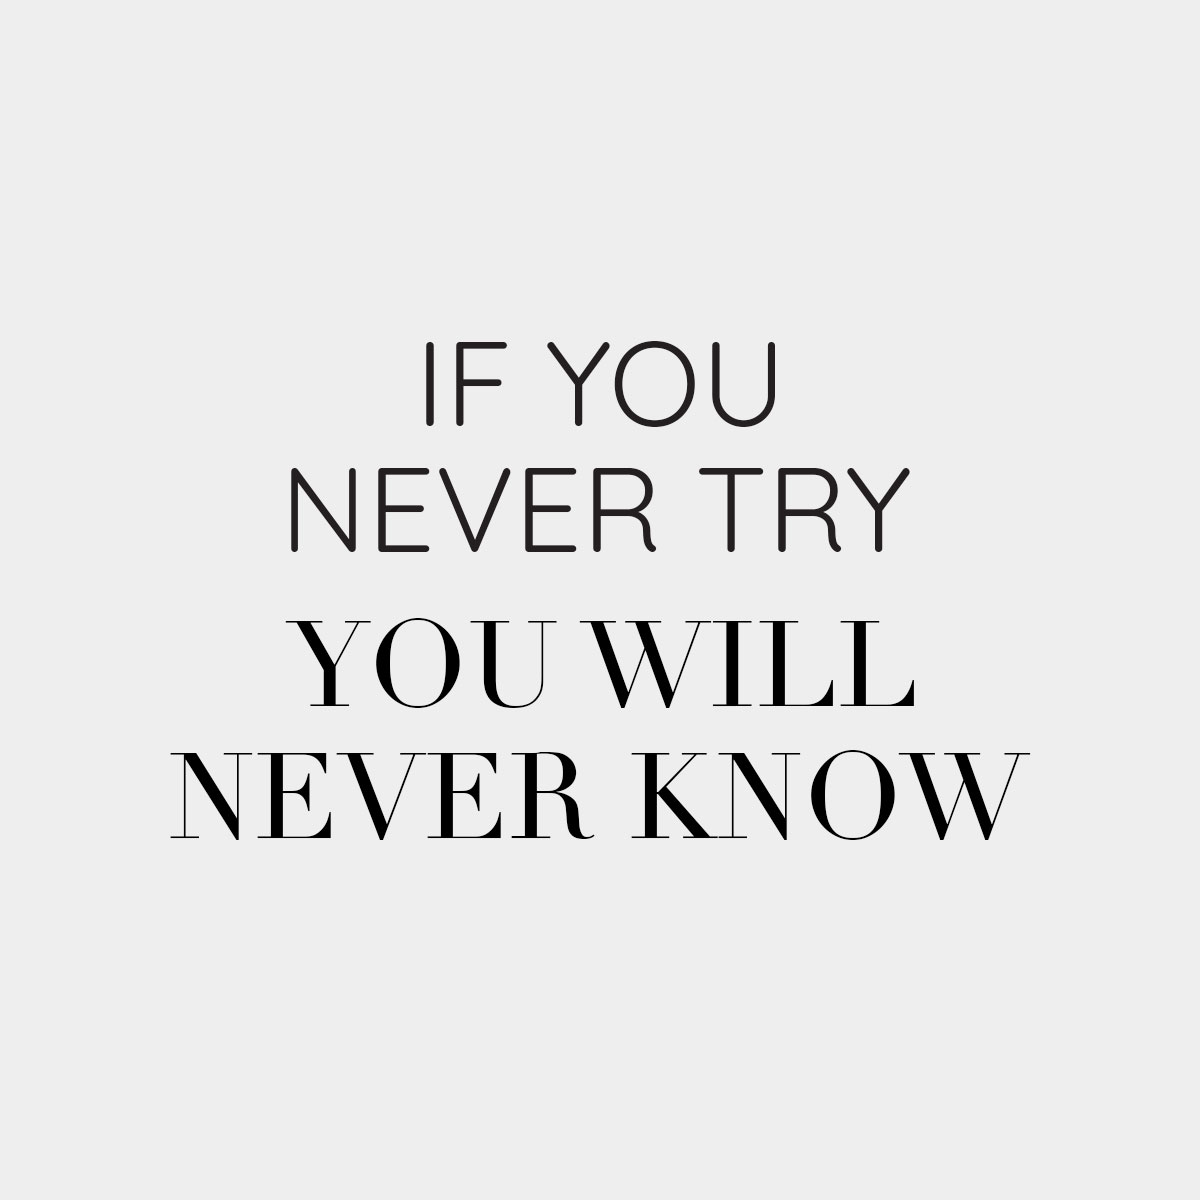 If you never try, you will neverknow.